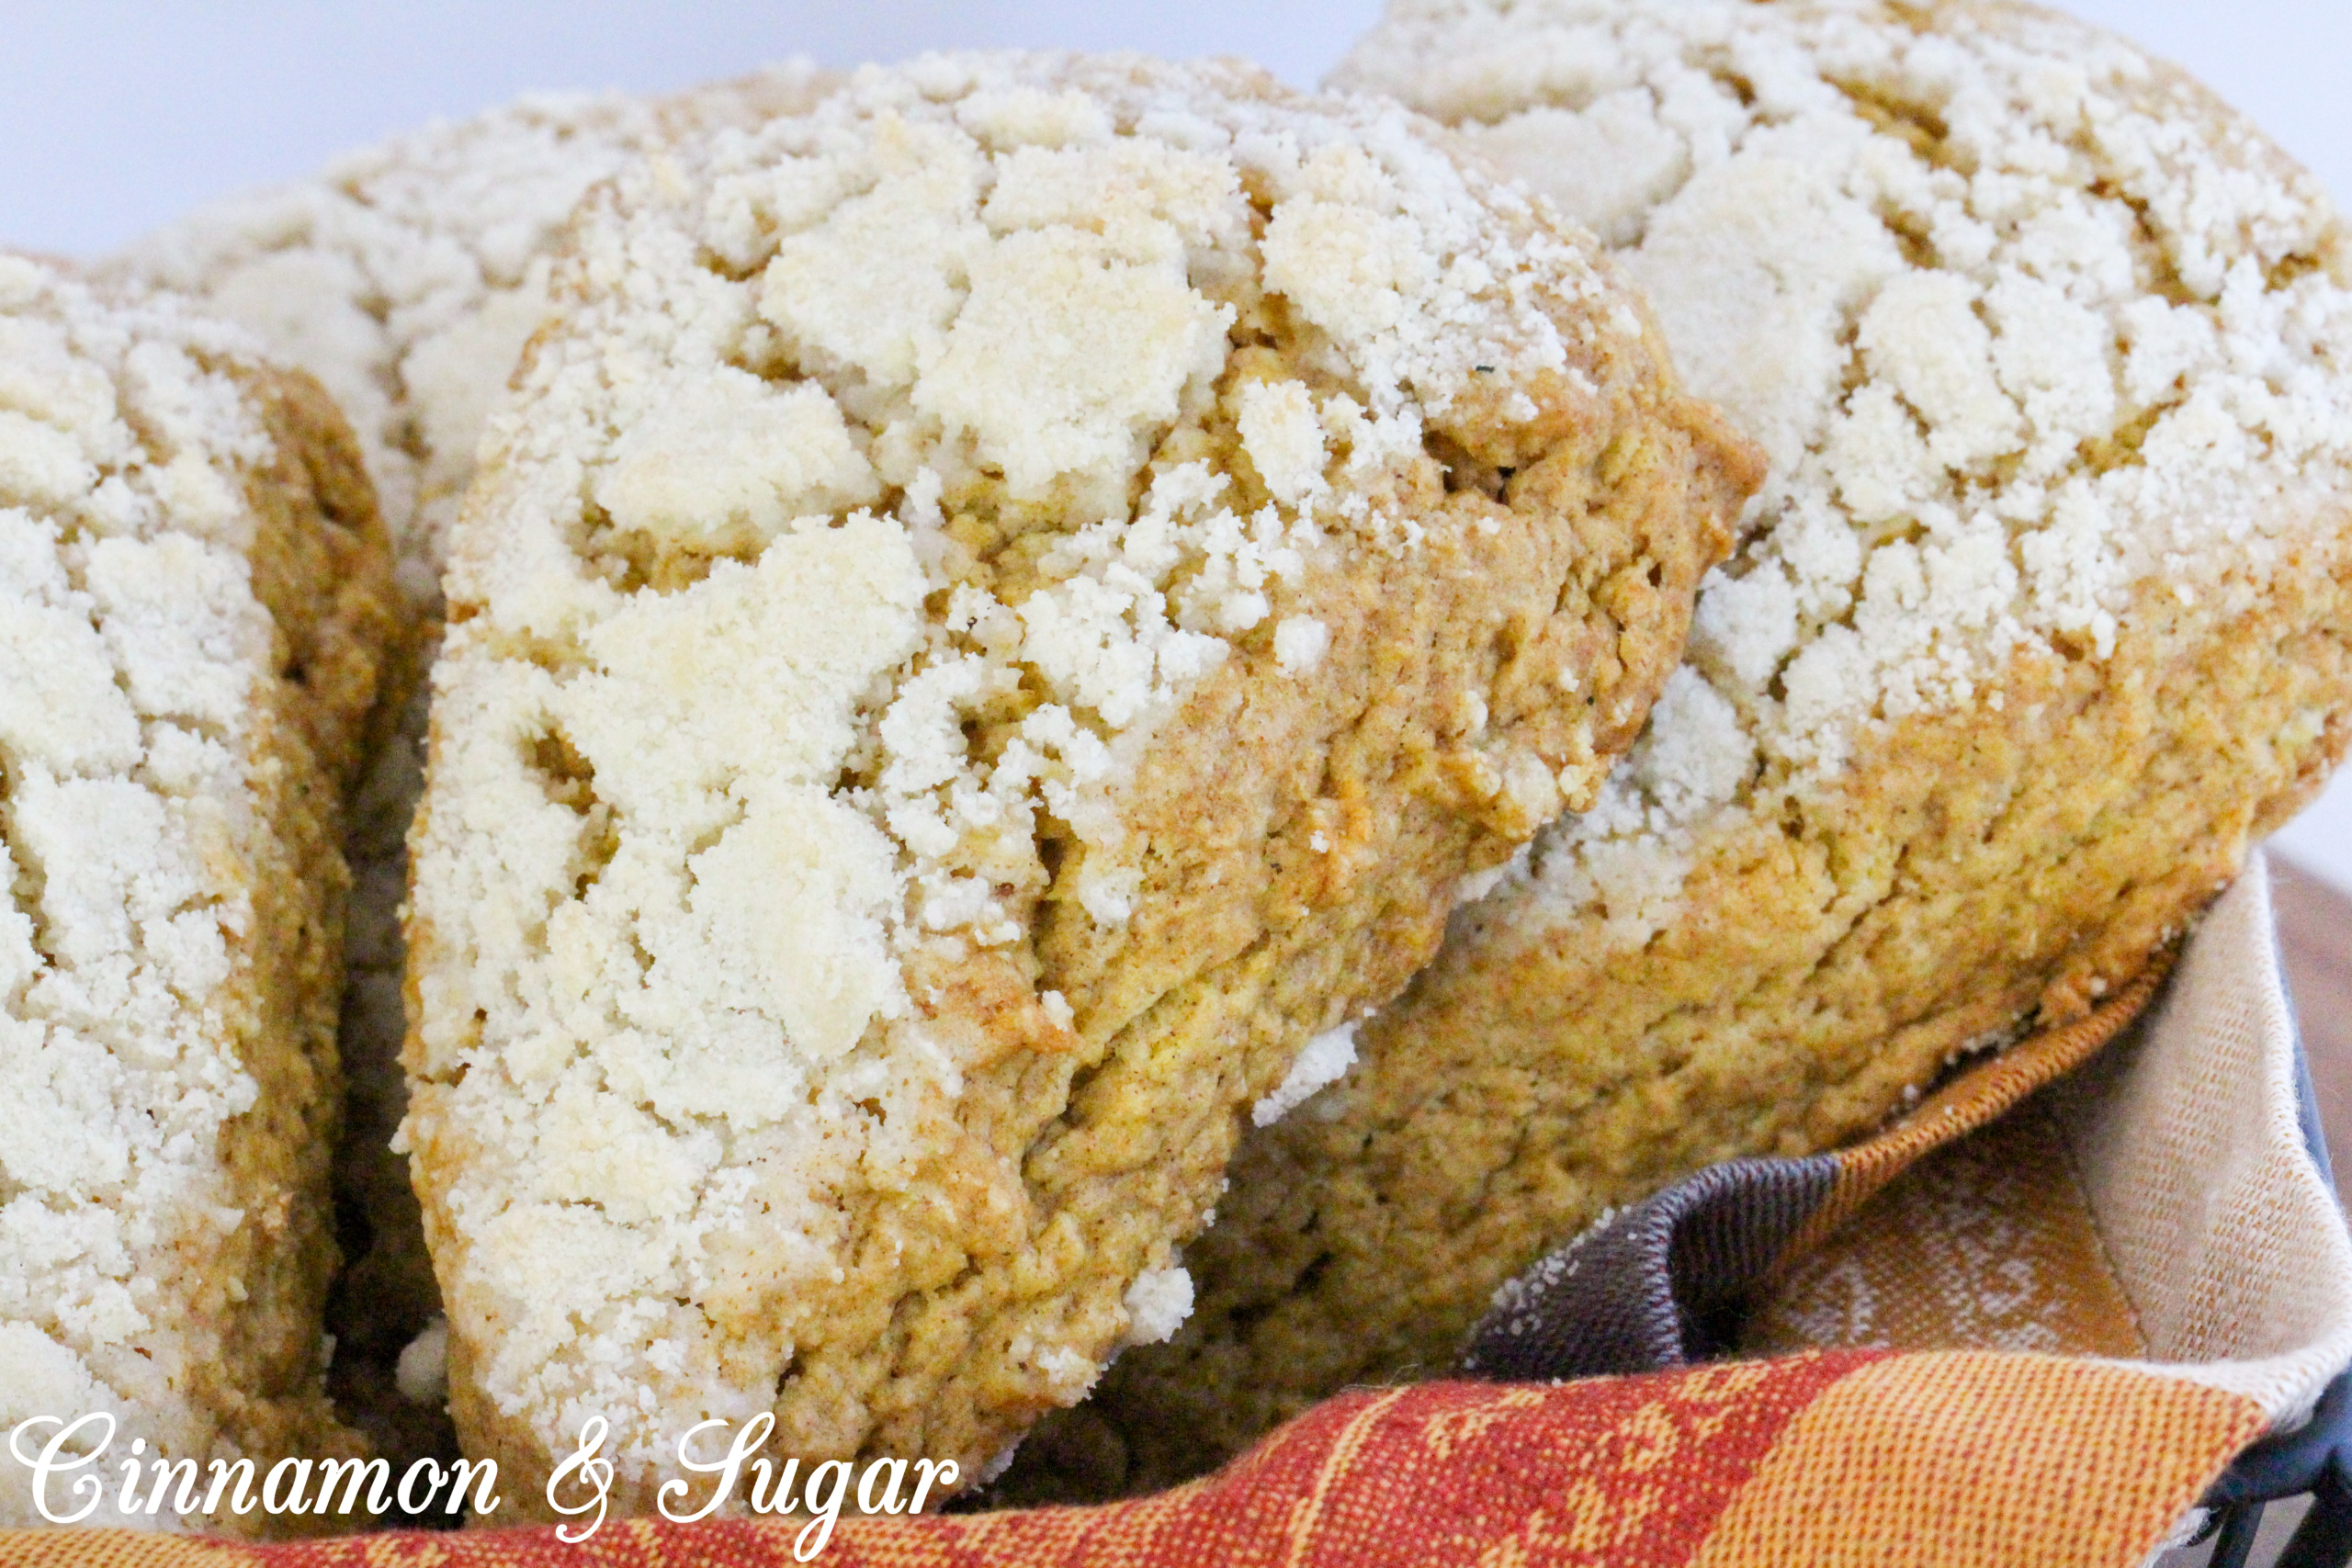 Sweet streusel complements the cinnamon in these Maple-Pumpkin Scones without being overly crumbly. Mild pumpkin brings color and a moist texture to these tea time treats. Recipe shared with permission granted by Kate Carlisle, author of THE GRIM READER.